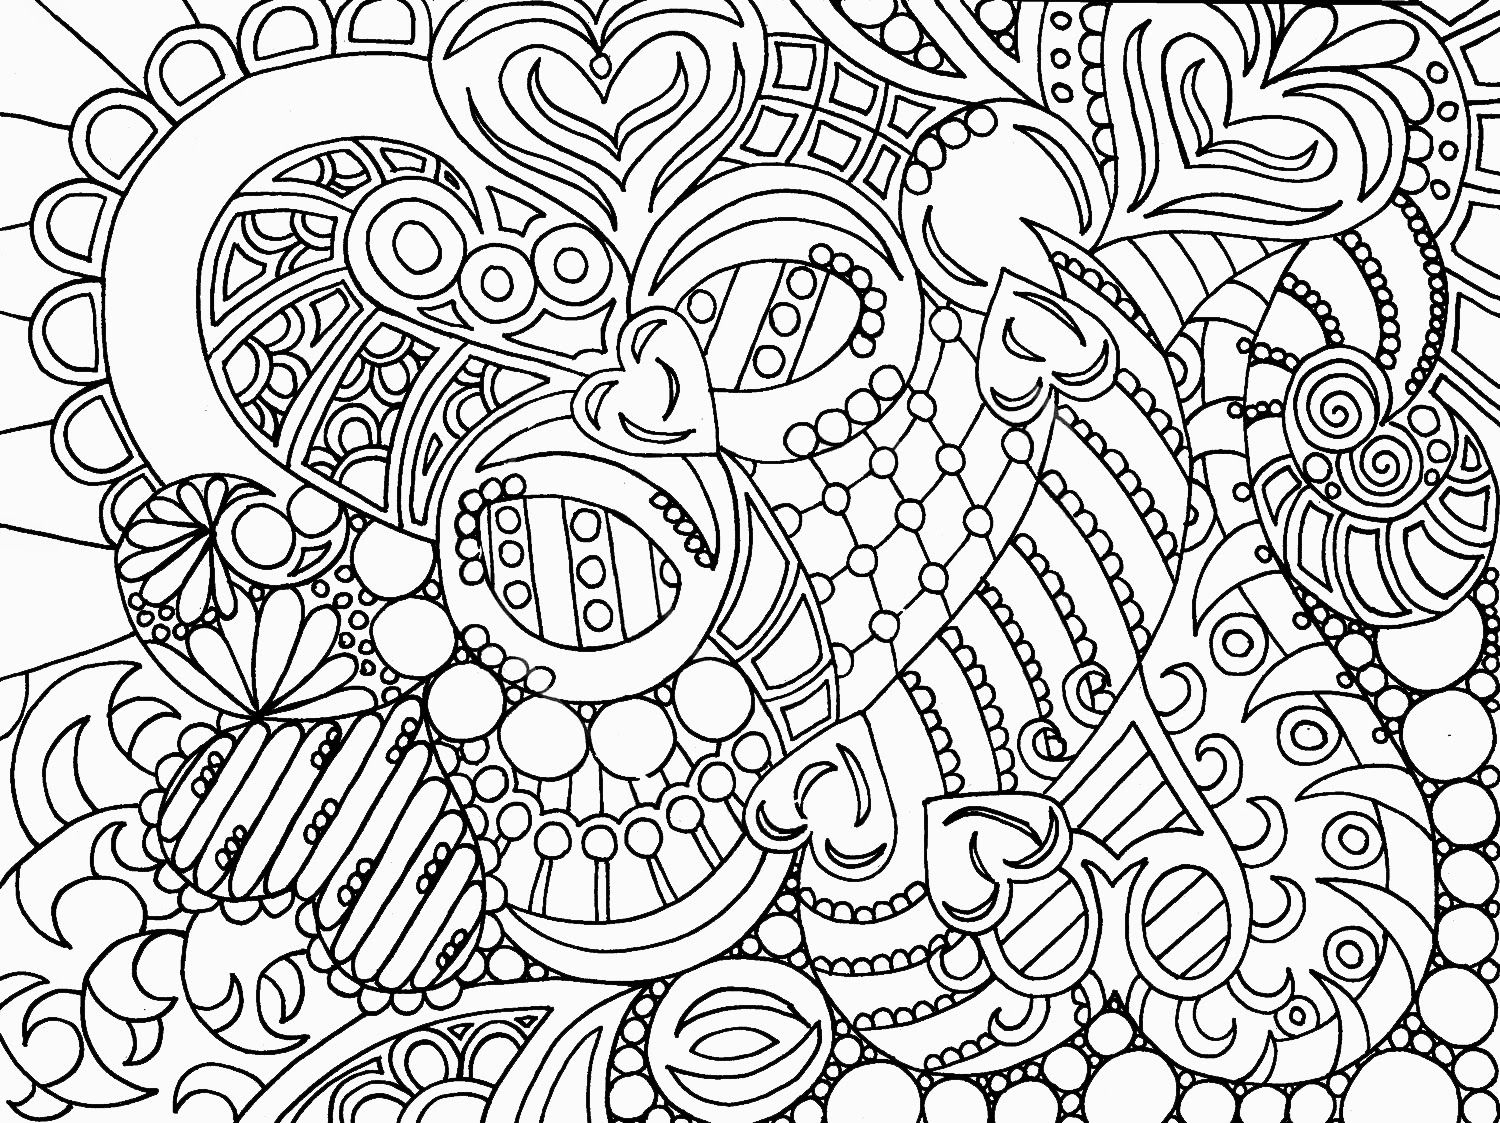 phil lewis art coloring books for adults : Phil Lewis Art Coloring Books For Adults 5